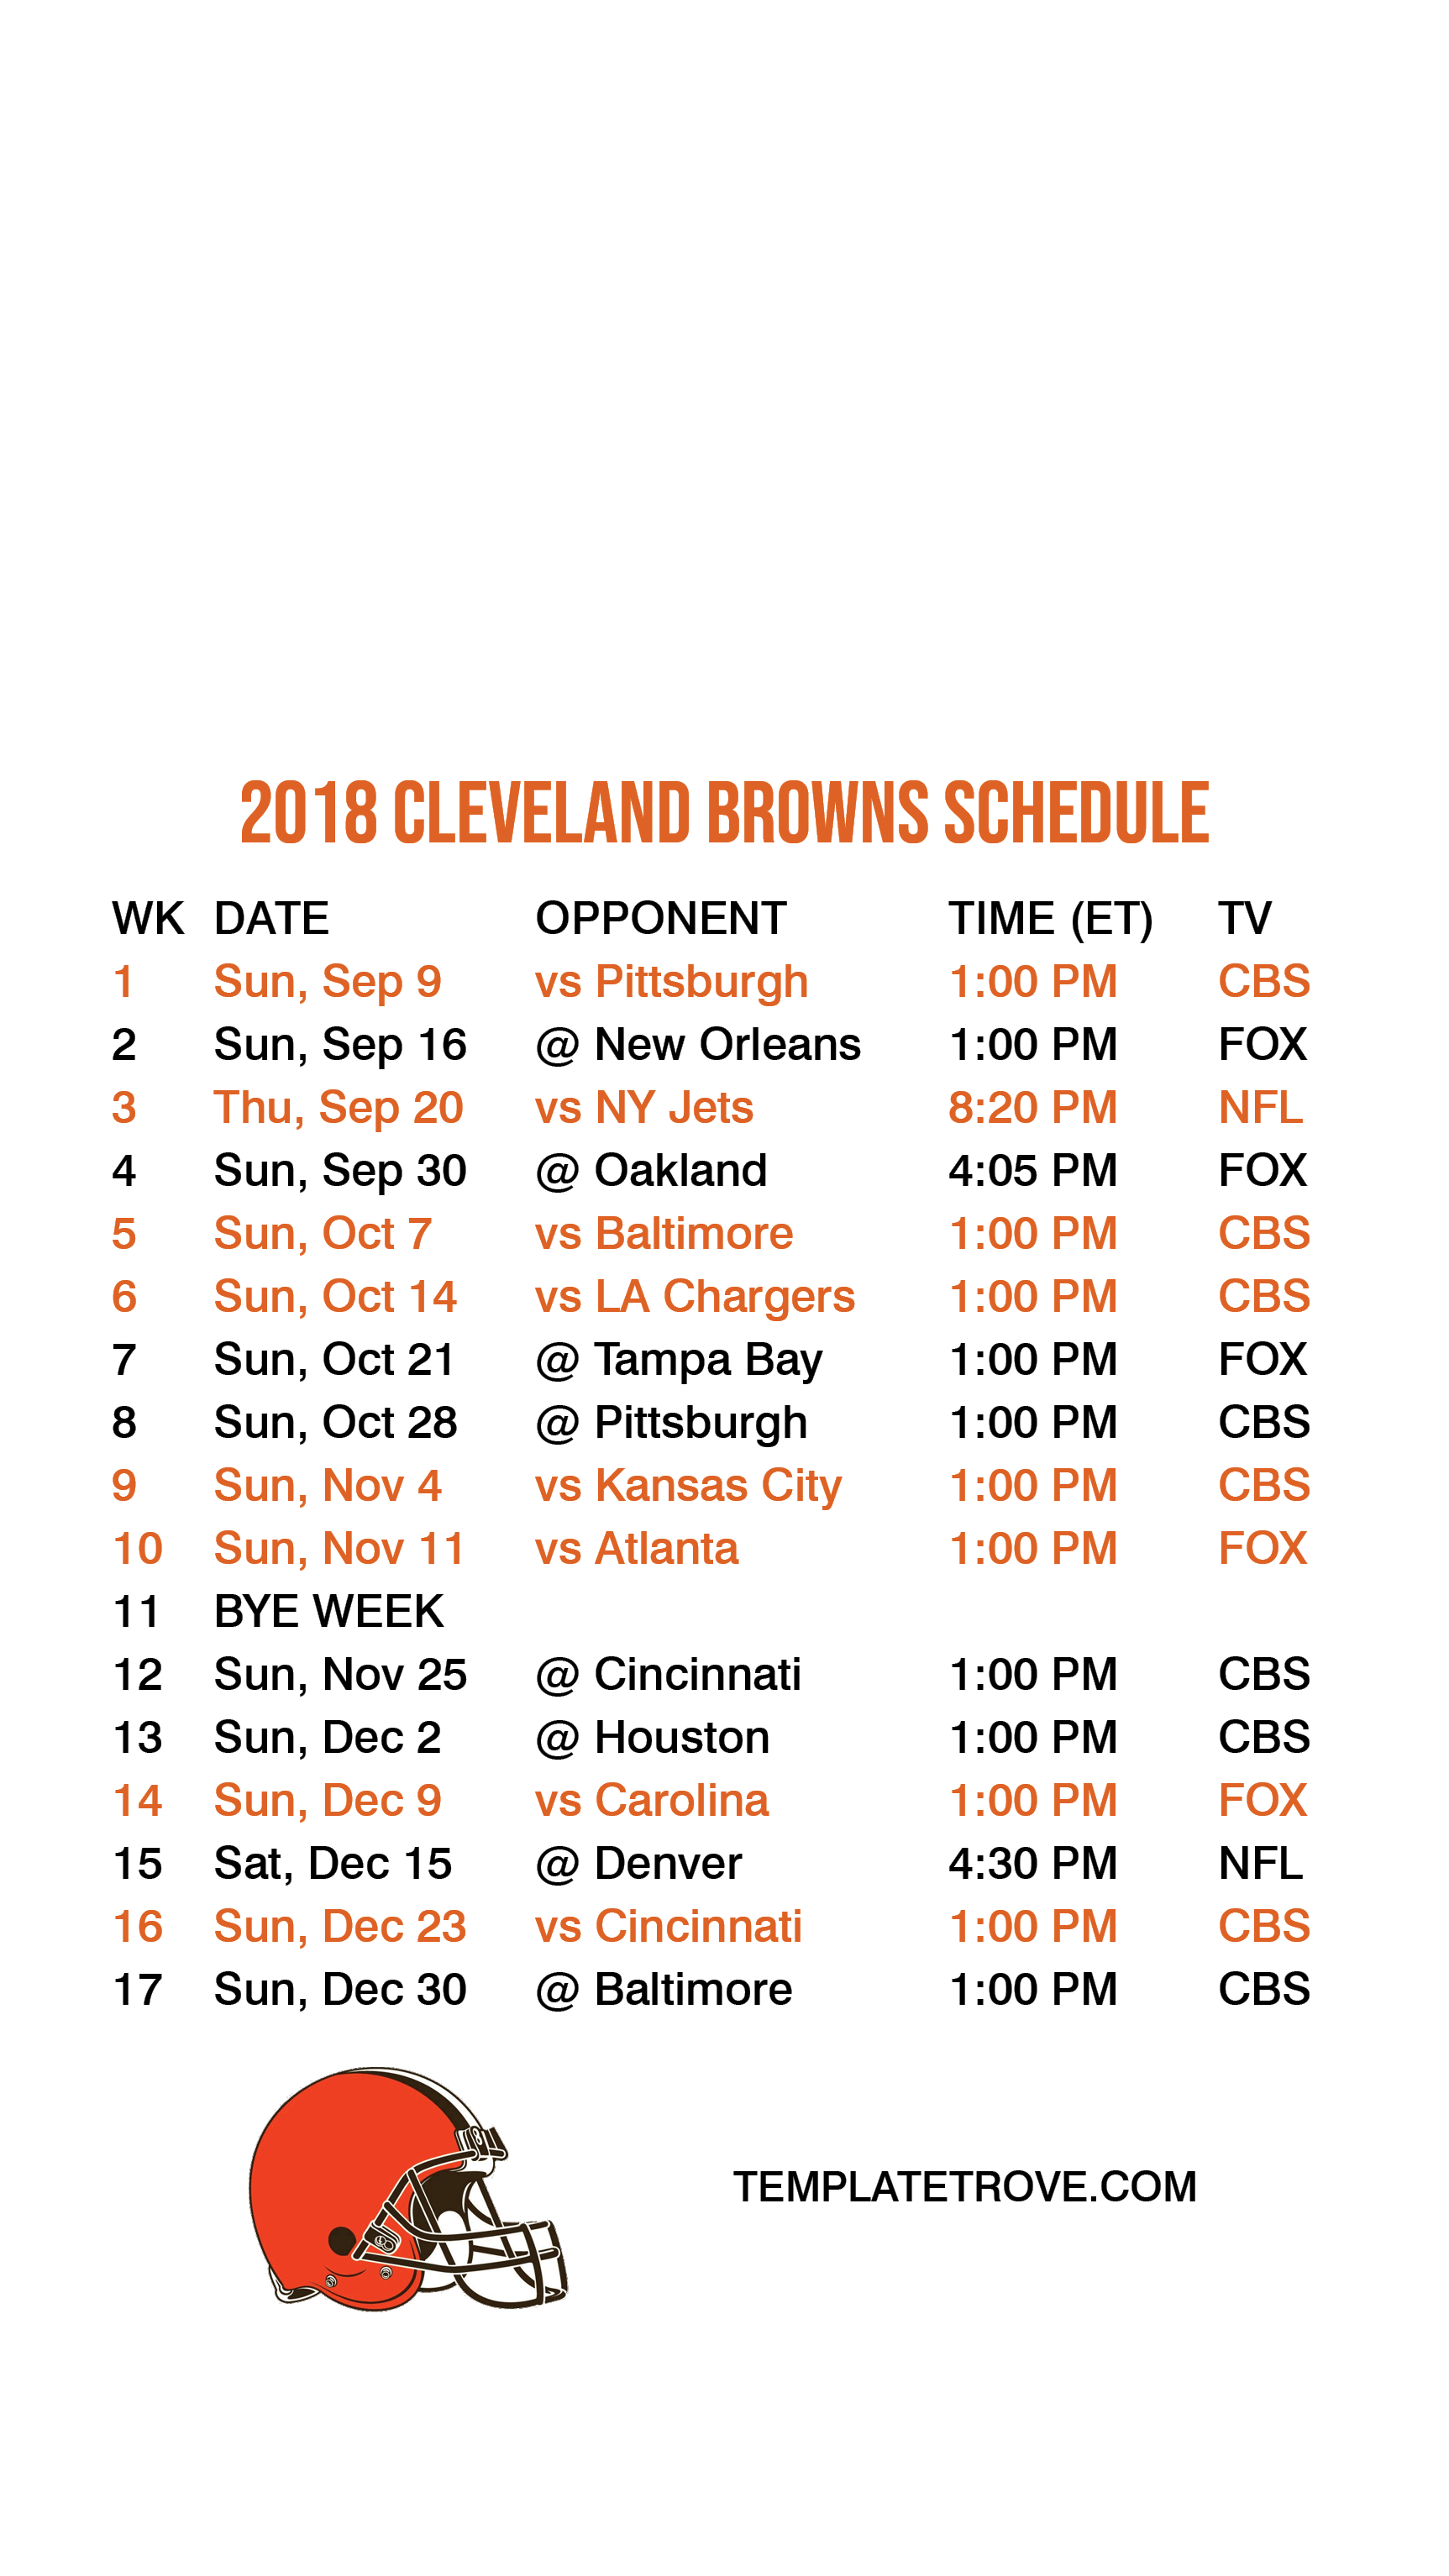 photograph about Cleveland Browns Printable Schedule called 2018-2019 Cleveland Browns Lock Display Routine for apple iphone 6